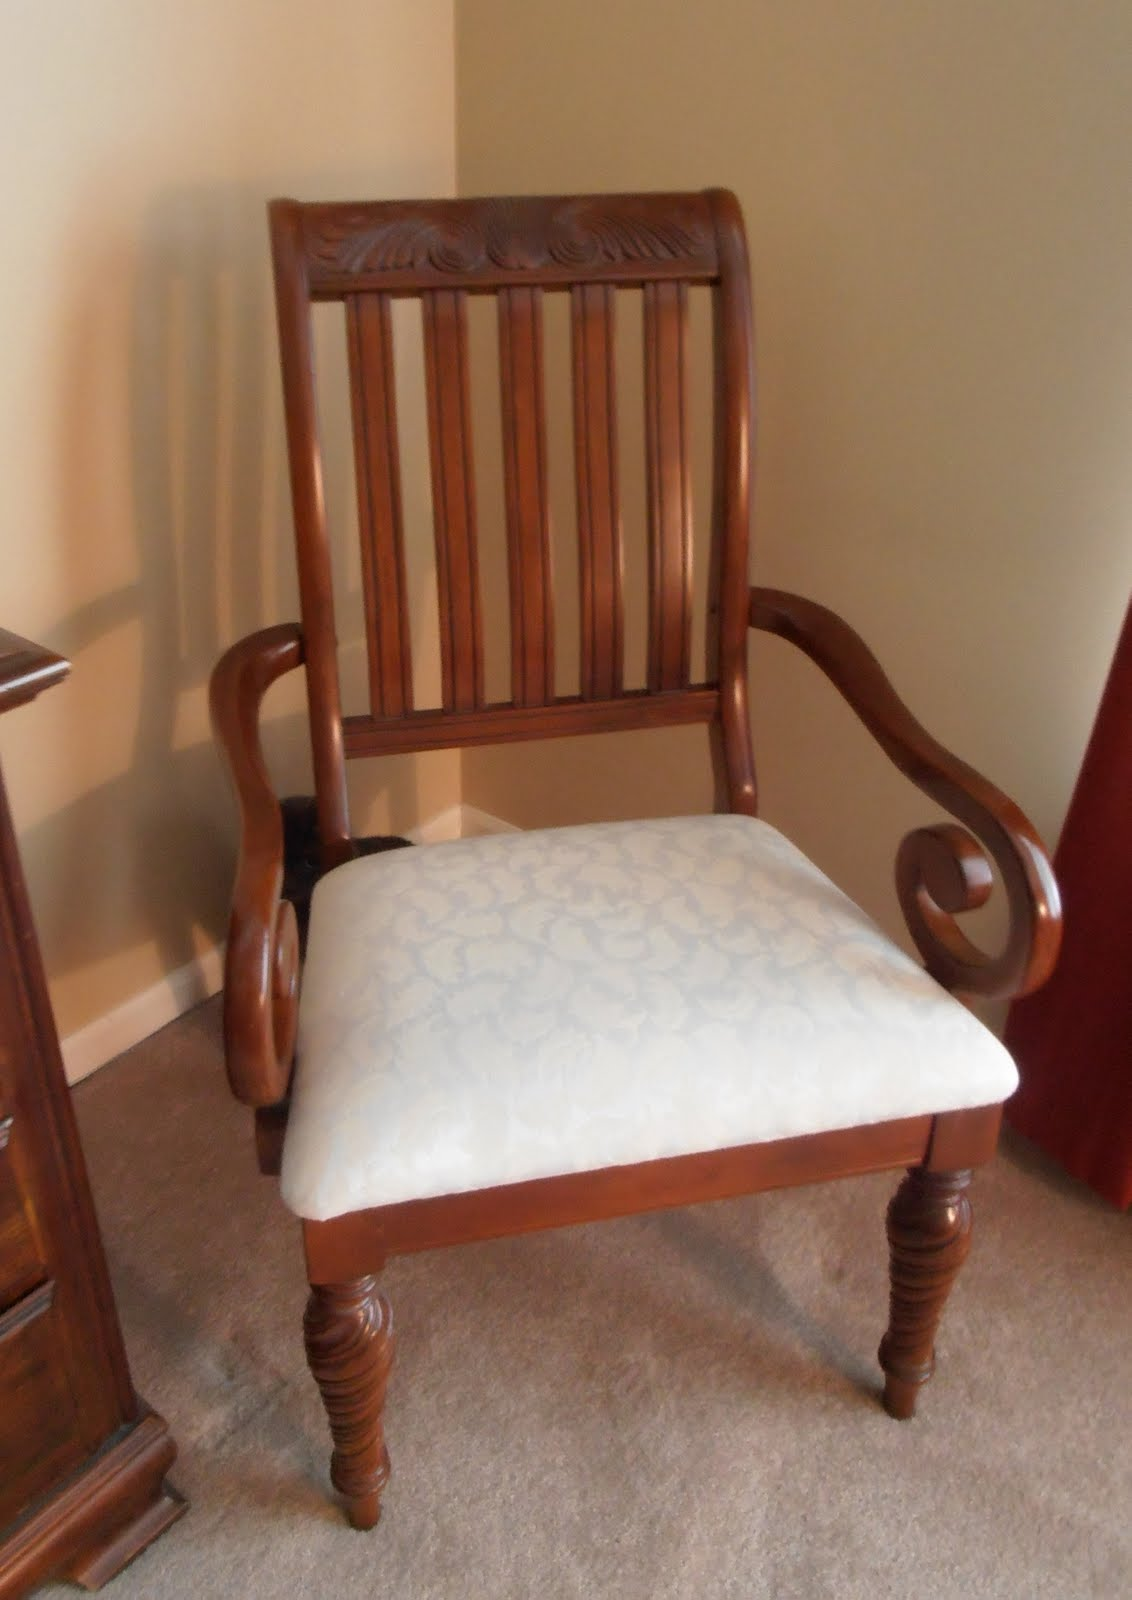 Chair Seat Covers: Cheapest Way to Reorganize Home this ...